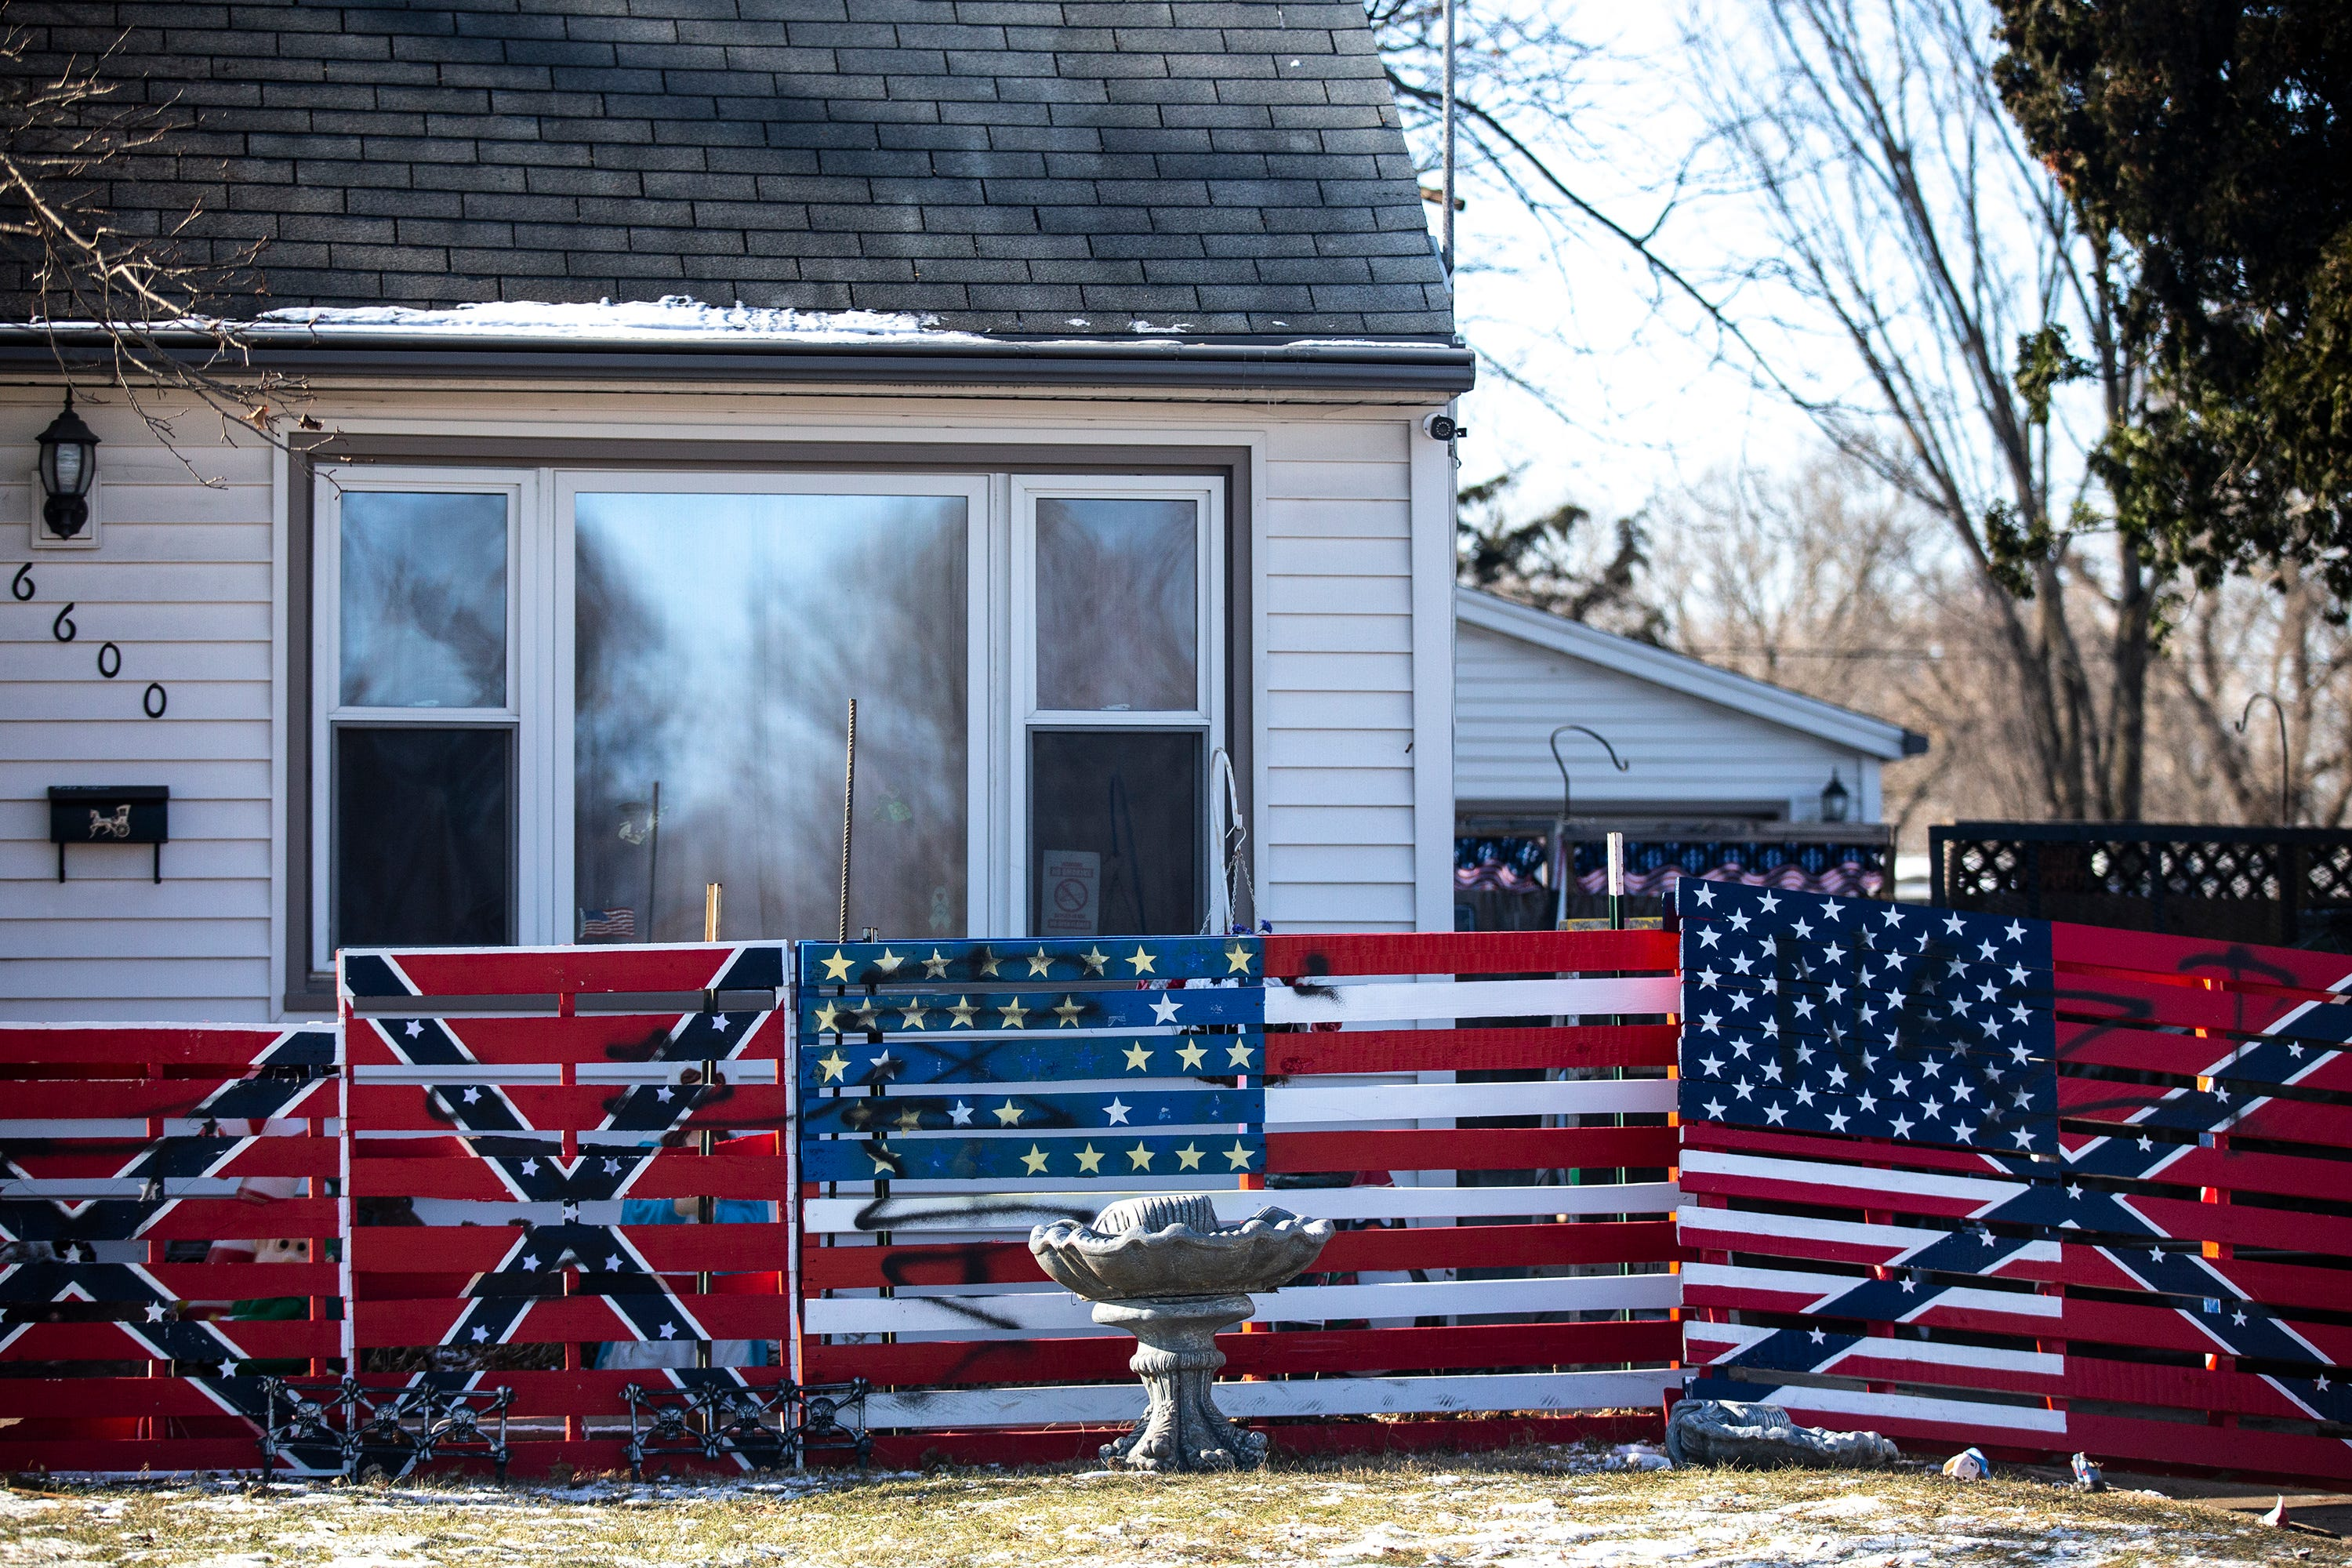 Photos of Des Moines man's painted pallets that include swastika